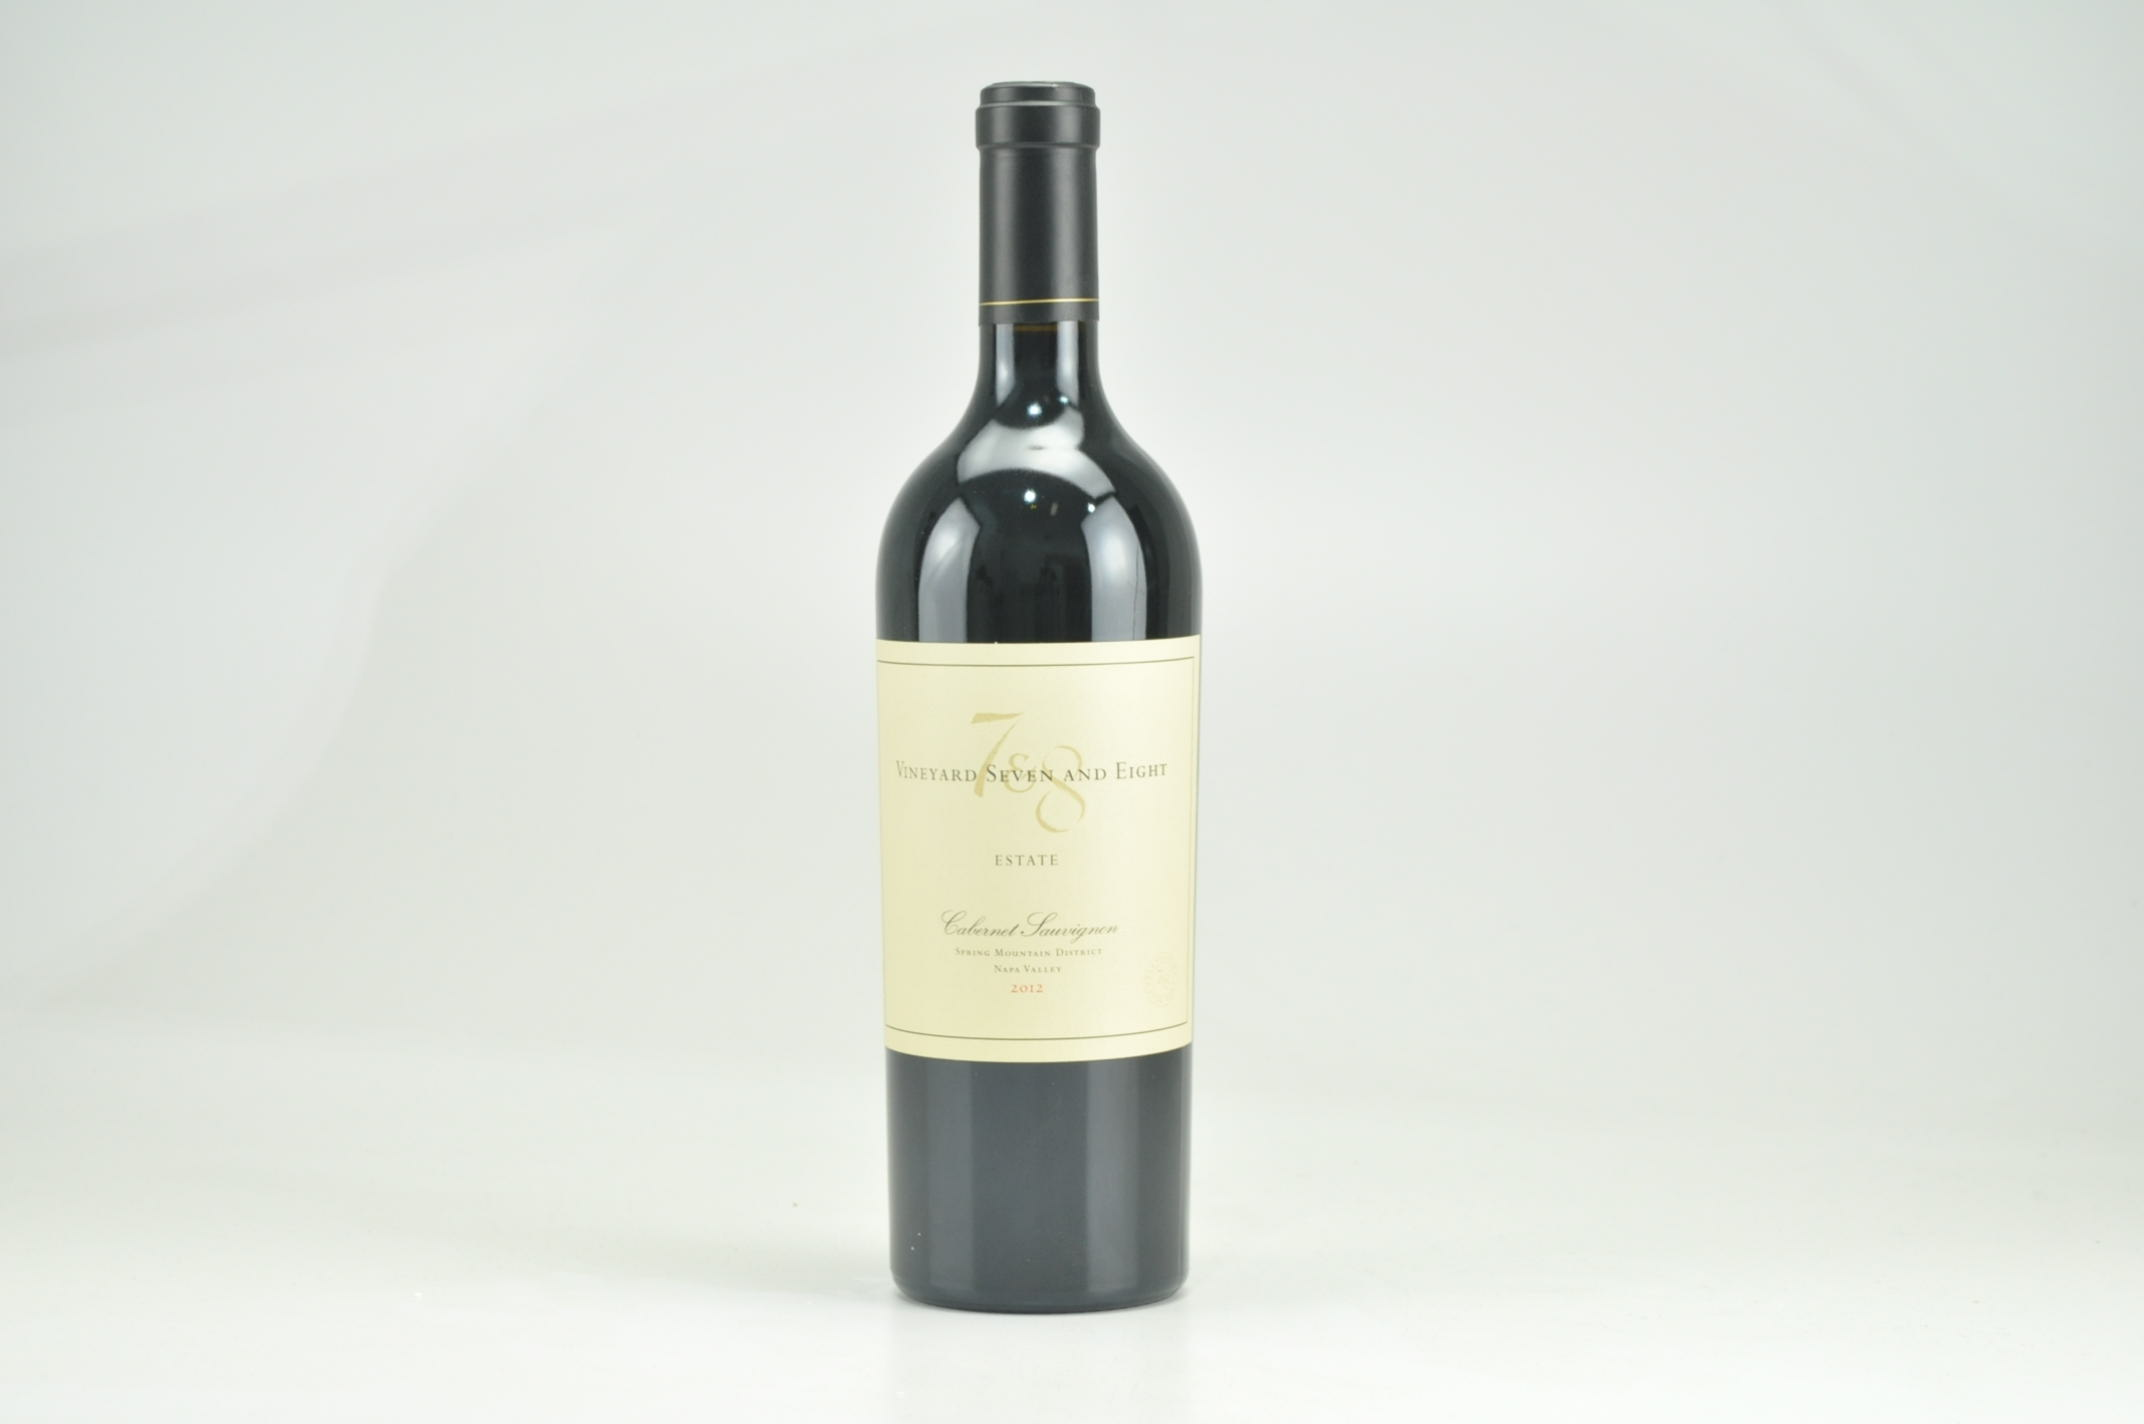 2012 Vineyard Seven and Eight Estate Cabernet Sauvignon RP--92--94